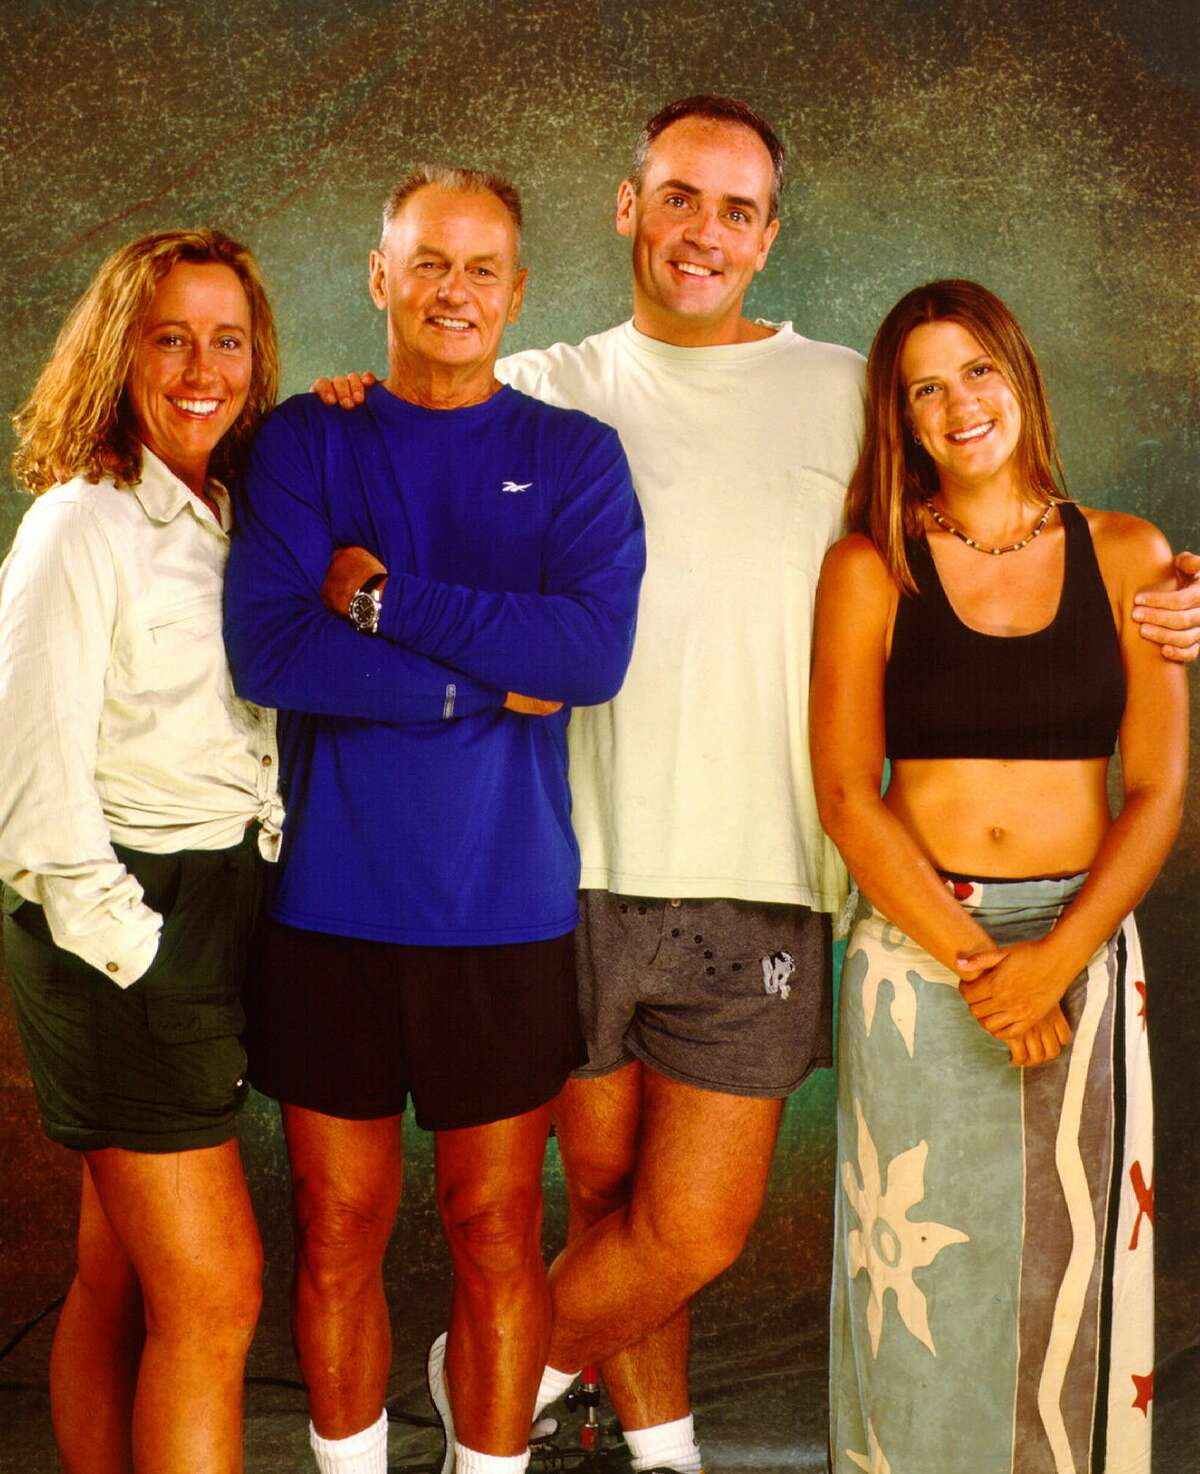 Four months after the final episode of SURVIVOR was taped on Pulau Tiga in the South China Sea, the final four castaways (from left: Susan, Rudy, Richard and Kelly) reunited in Los Angeles in August. At the conclusion of the final episode, which will be broadcast on Wednesday, August 23, 2000 at 8 p.m. to 11 p.m. (ET/PT) on the CBS Television Network, one of the four will leave the island $1 million richer.